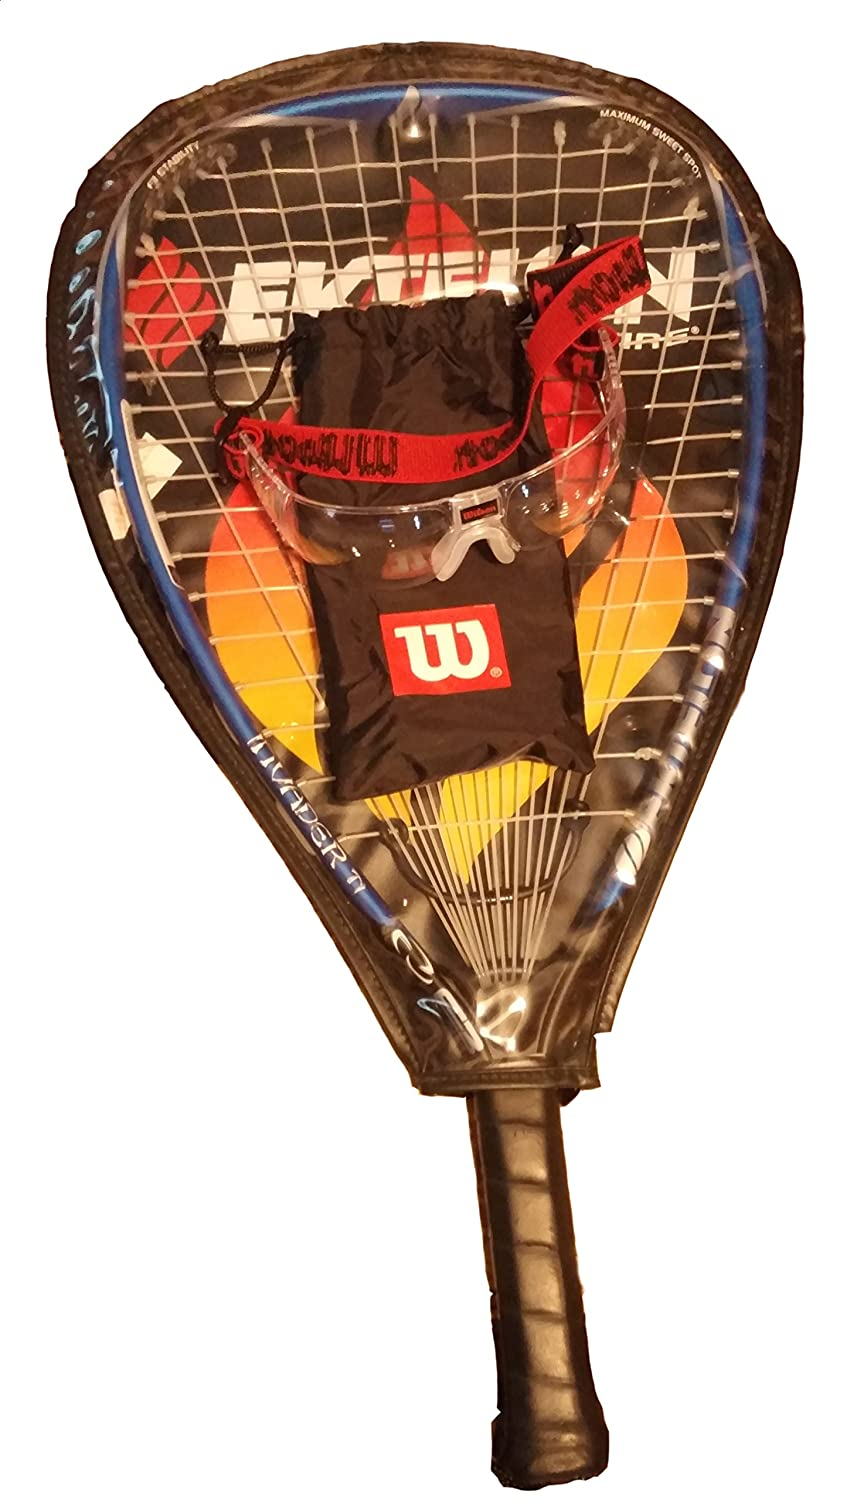 Amazon.com: Ektelon racquetball raqueta F3 Invader Ti 925 ...